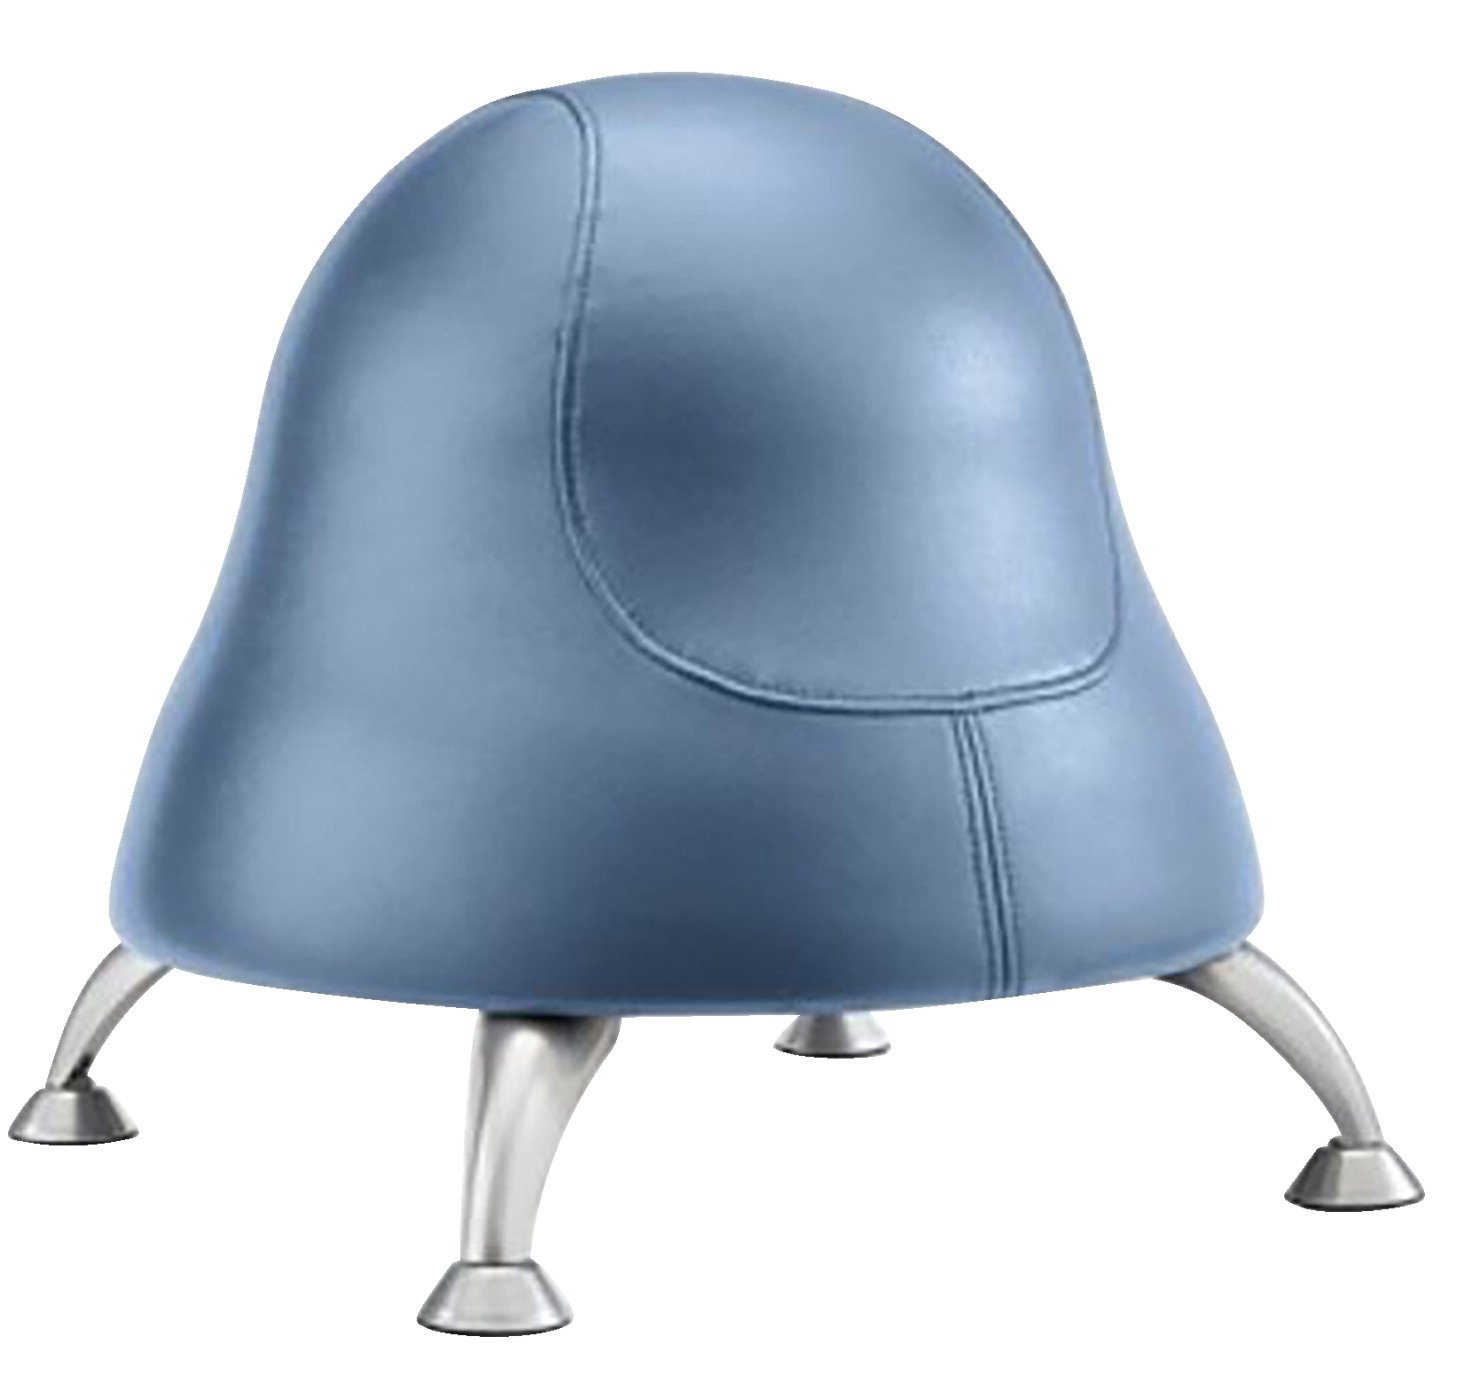 Safco Runtz Vinyl Ball Chair, 22-1/2 x 22-1/2 x 17 Inches, Ocean by Safco